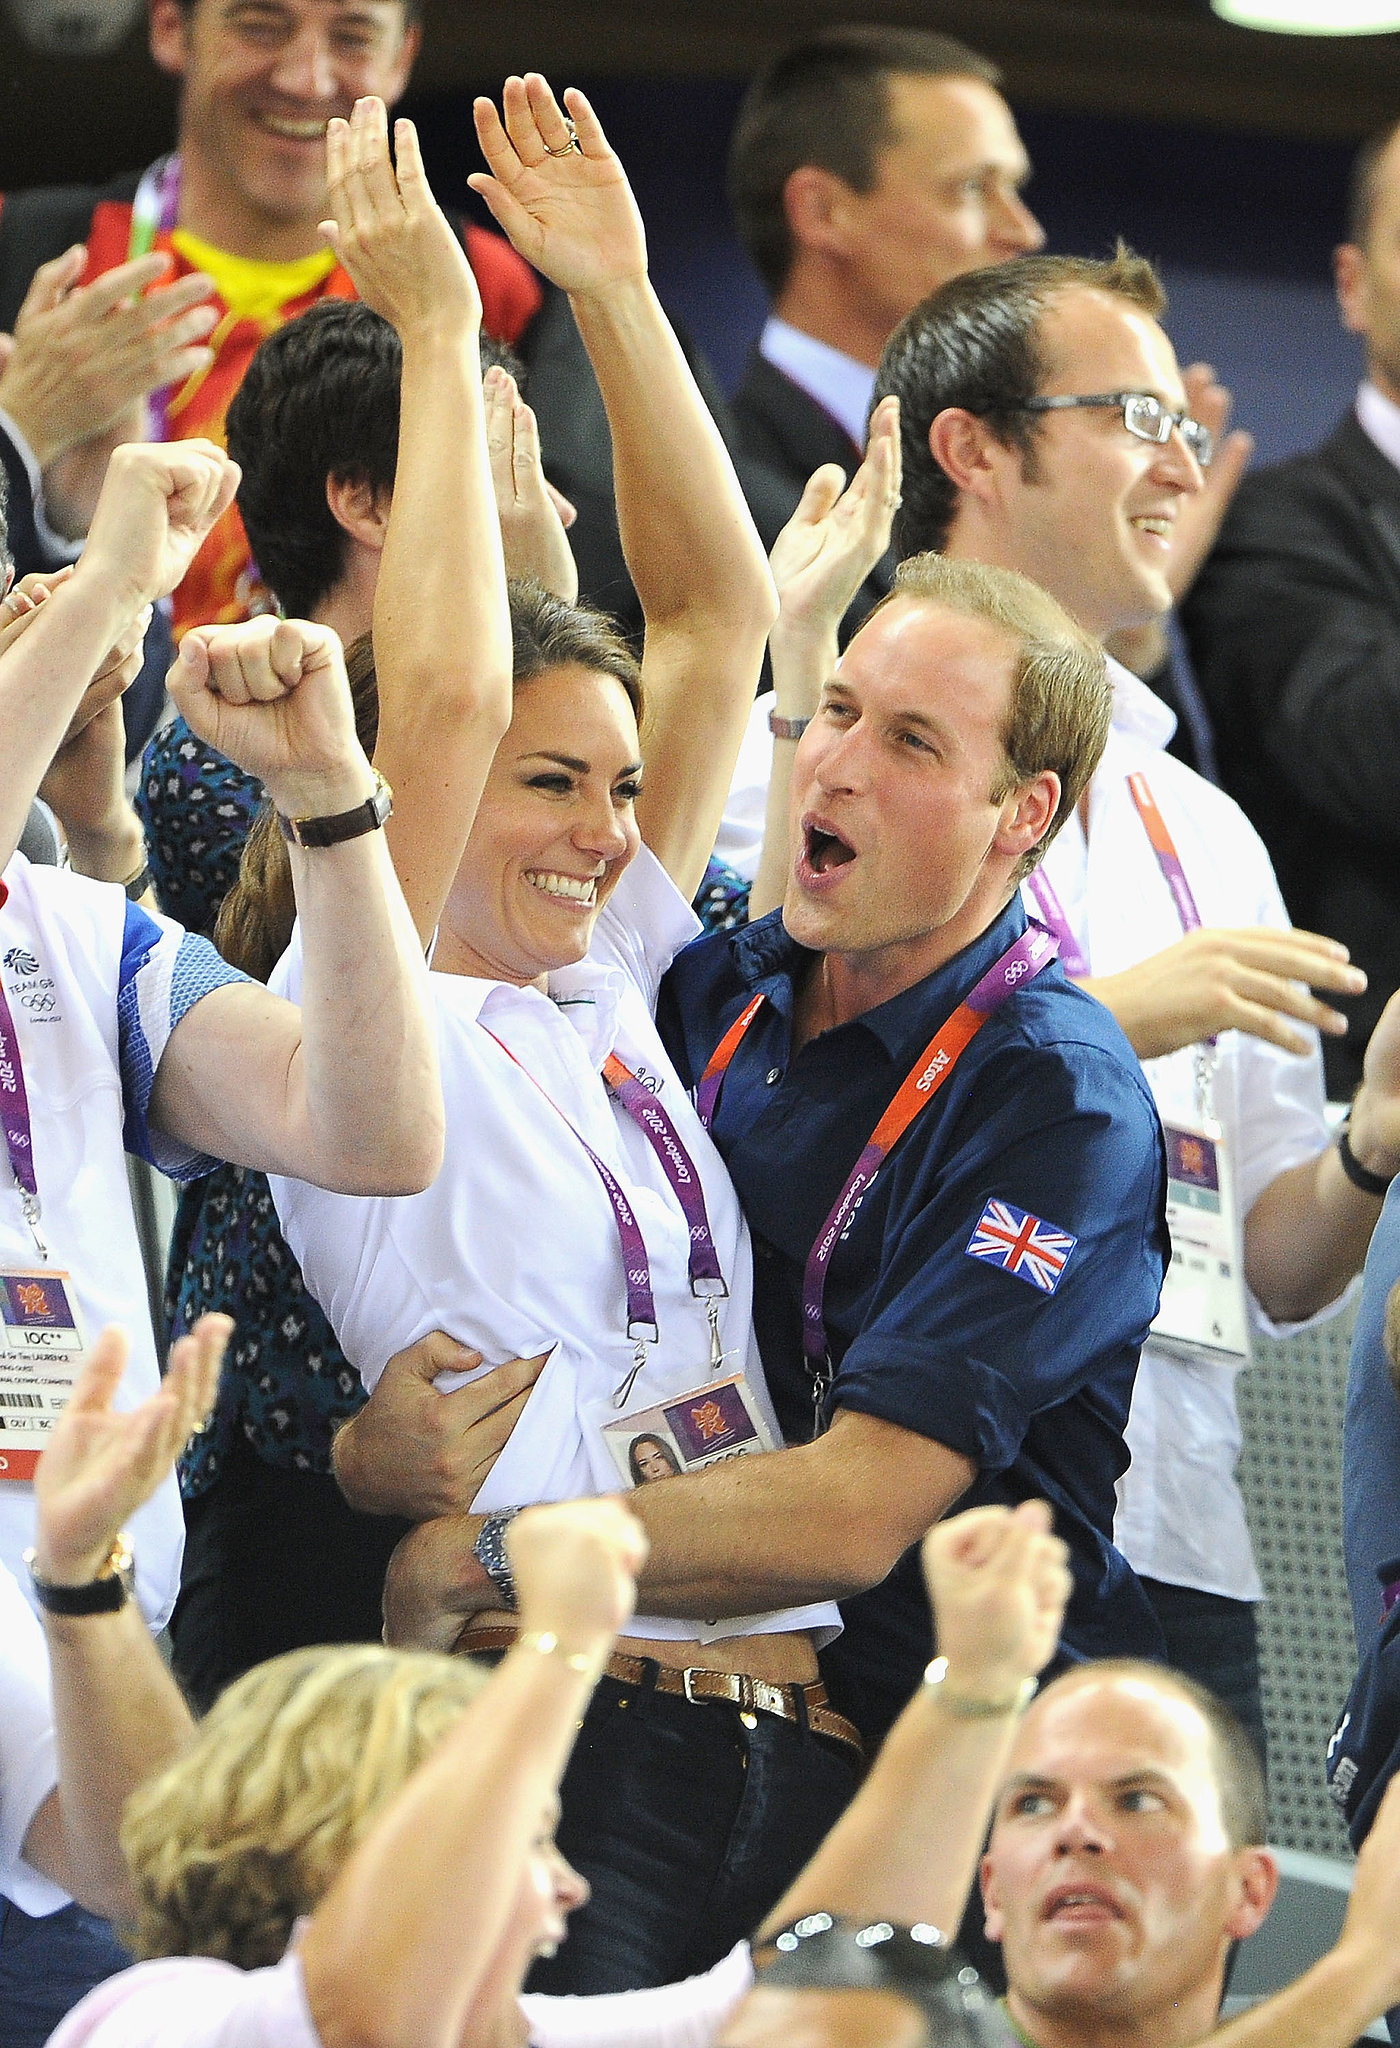 Kate Middleton and Prince William couldn't contain their excitement during the Summer 2012 Olympics in London.